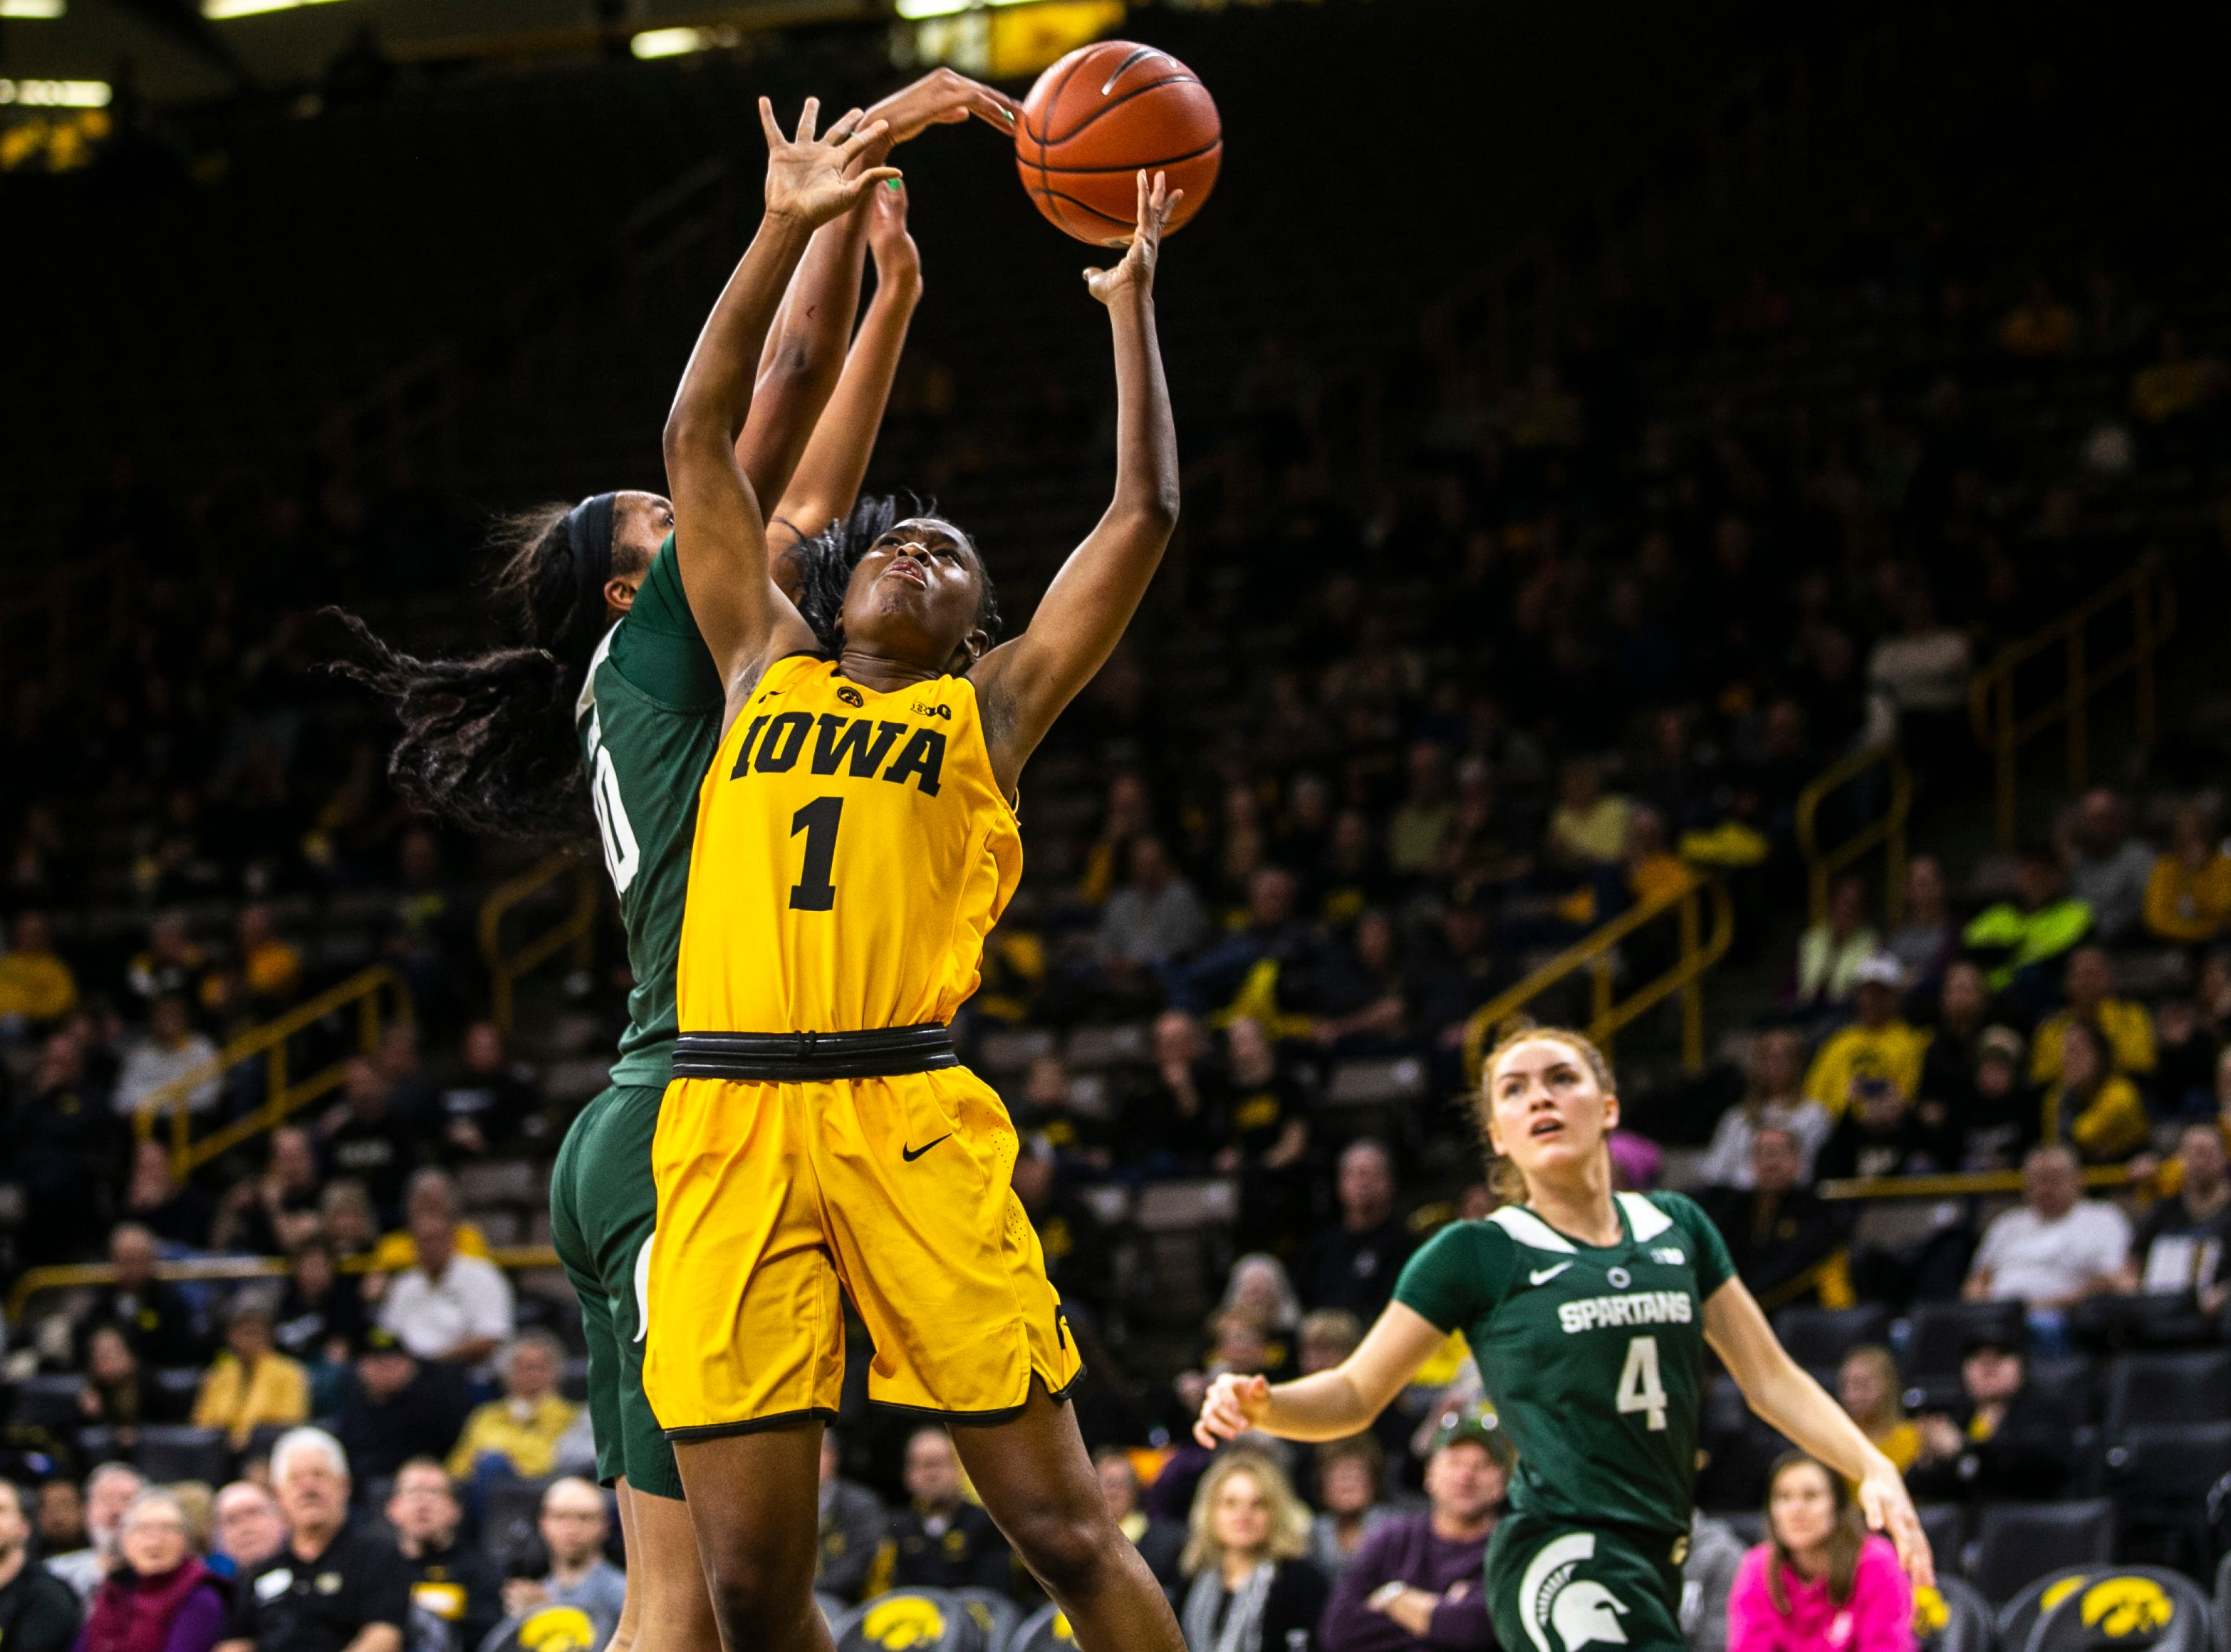 Michigan State forward Sidney Cooks (10) blocks Iowa guard Tomi Taiwo (1) during a NCAA Big Ten Conference women's basketball game on Thursday, Feb. 7, 2019 at Carver-Hawkeye Arena in Iowa City, Iowa.